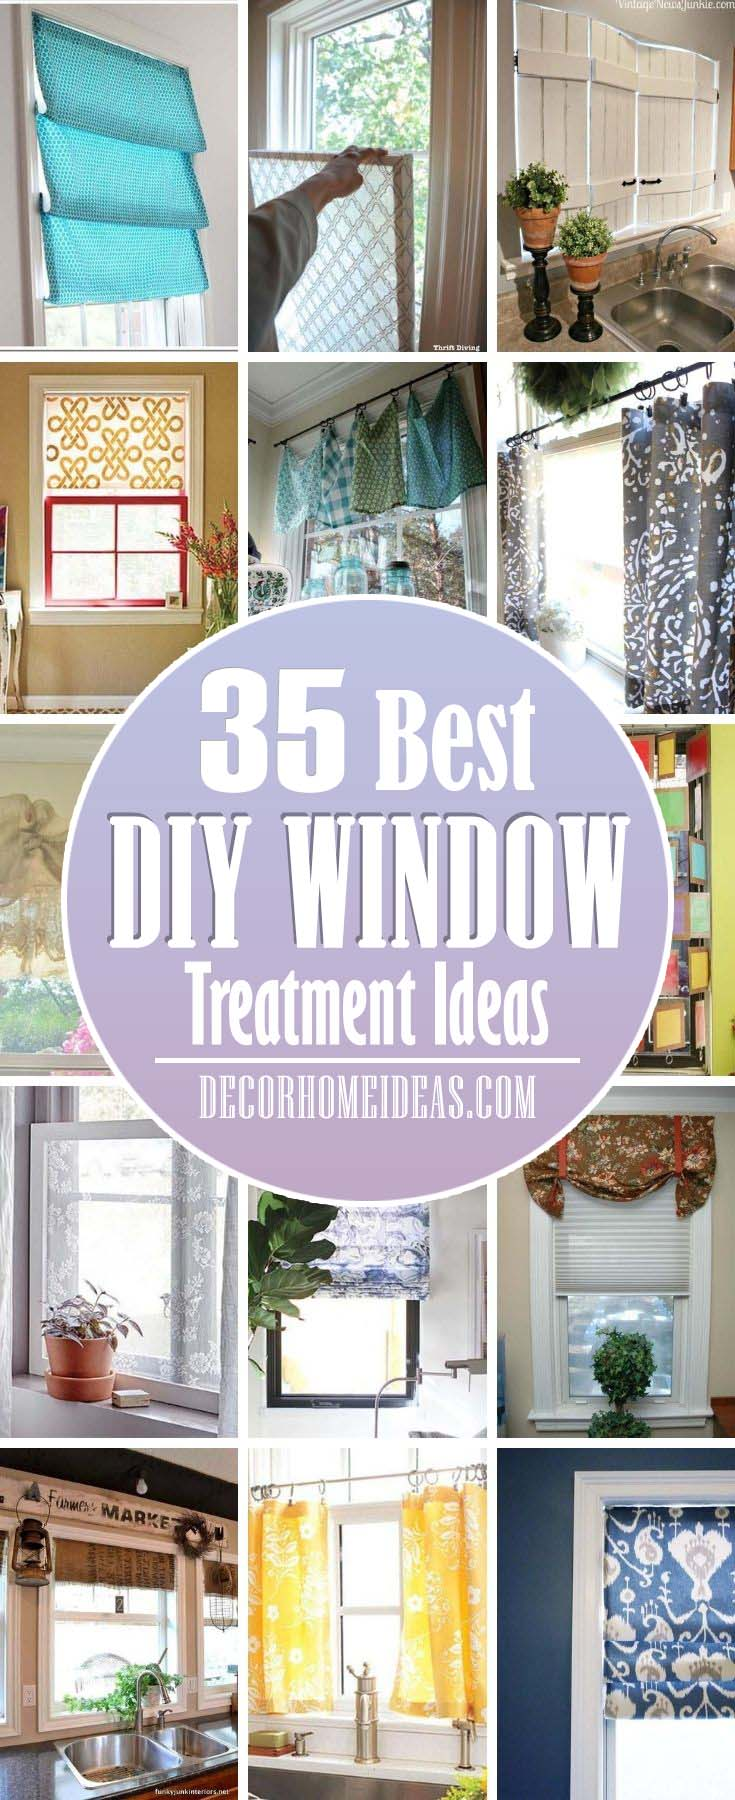 35 Best Diy Window Treatment Ideas That Ll Make Your View Even Better Decor Home Ideas